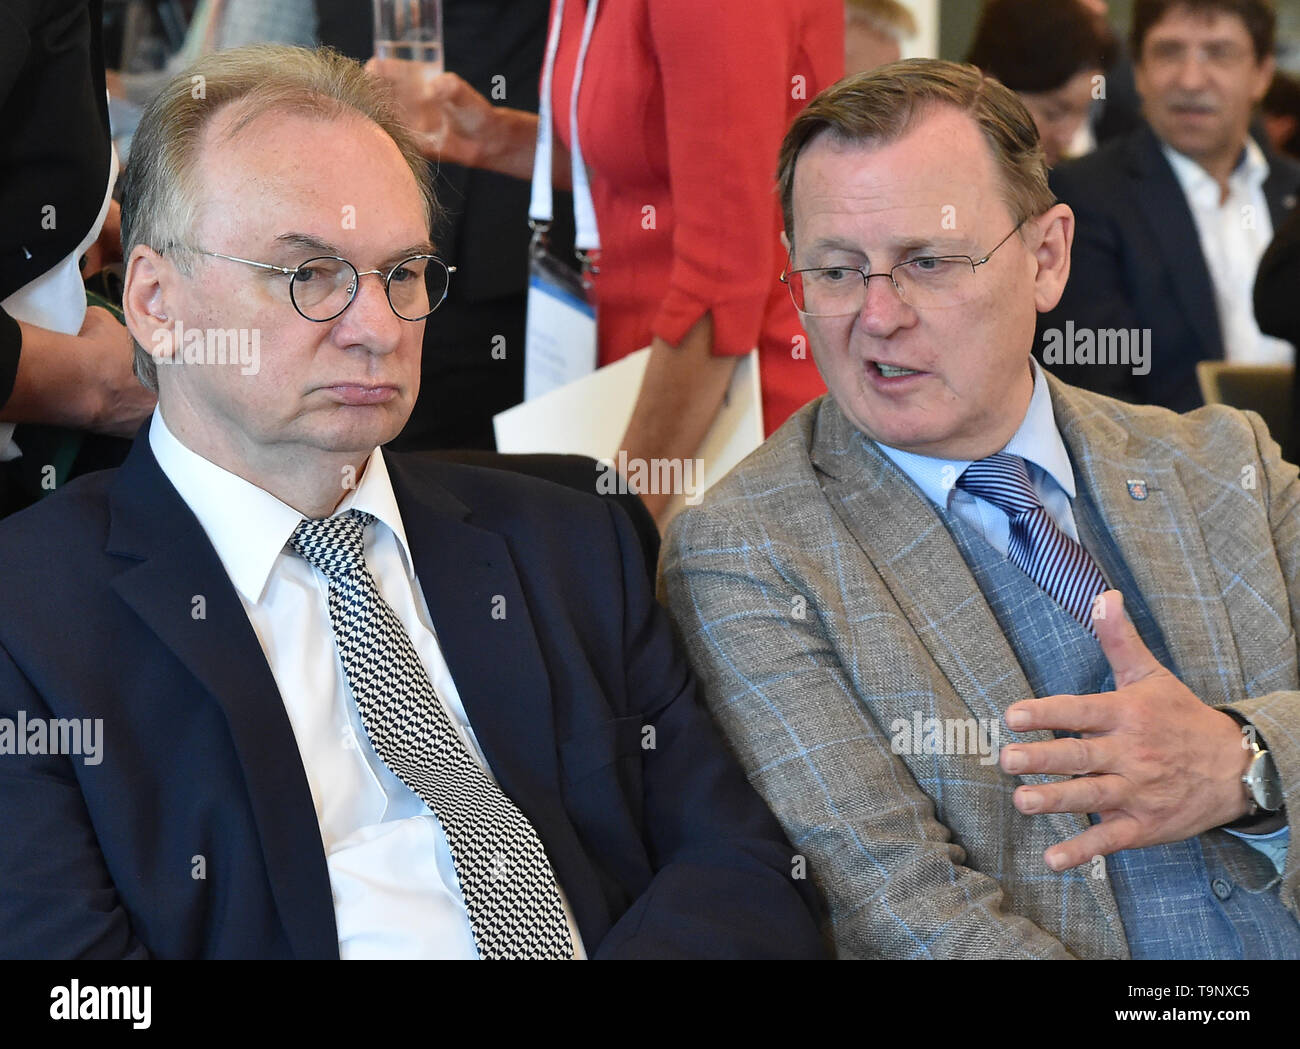 Potsdam, Germany. 20th May, 2019. Reiner Haseloff (CDU, l), Prime Minister of Saxony-Anhalt, talks to Bodo Ramelow (Die Linke), Prime Minister of Thuringia, at the East German Economic Forum (OWF). The theme of the event is 'How international must East German SMEs become? Opportunities and Risks in Times of Emerging Protectionism'. Credit: Bernd Settnik/dpa-Zentralbild/dpa/Alamy Live News - Stock Image